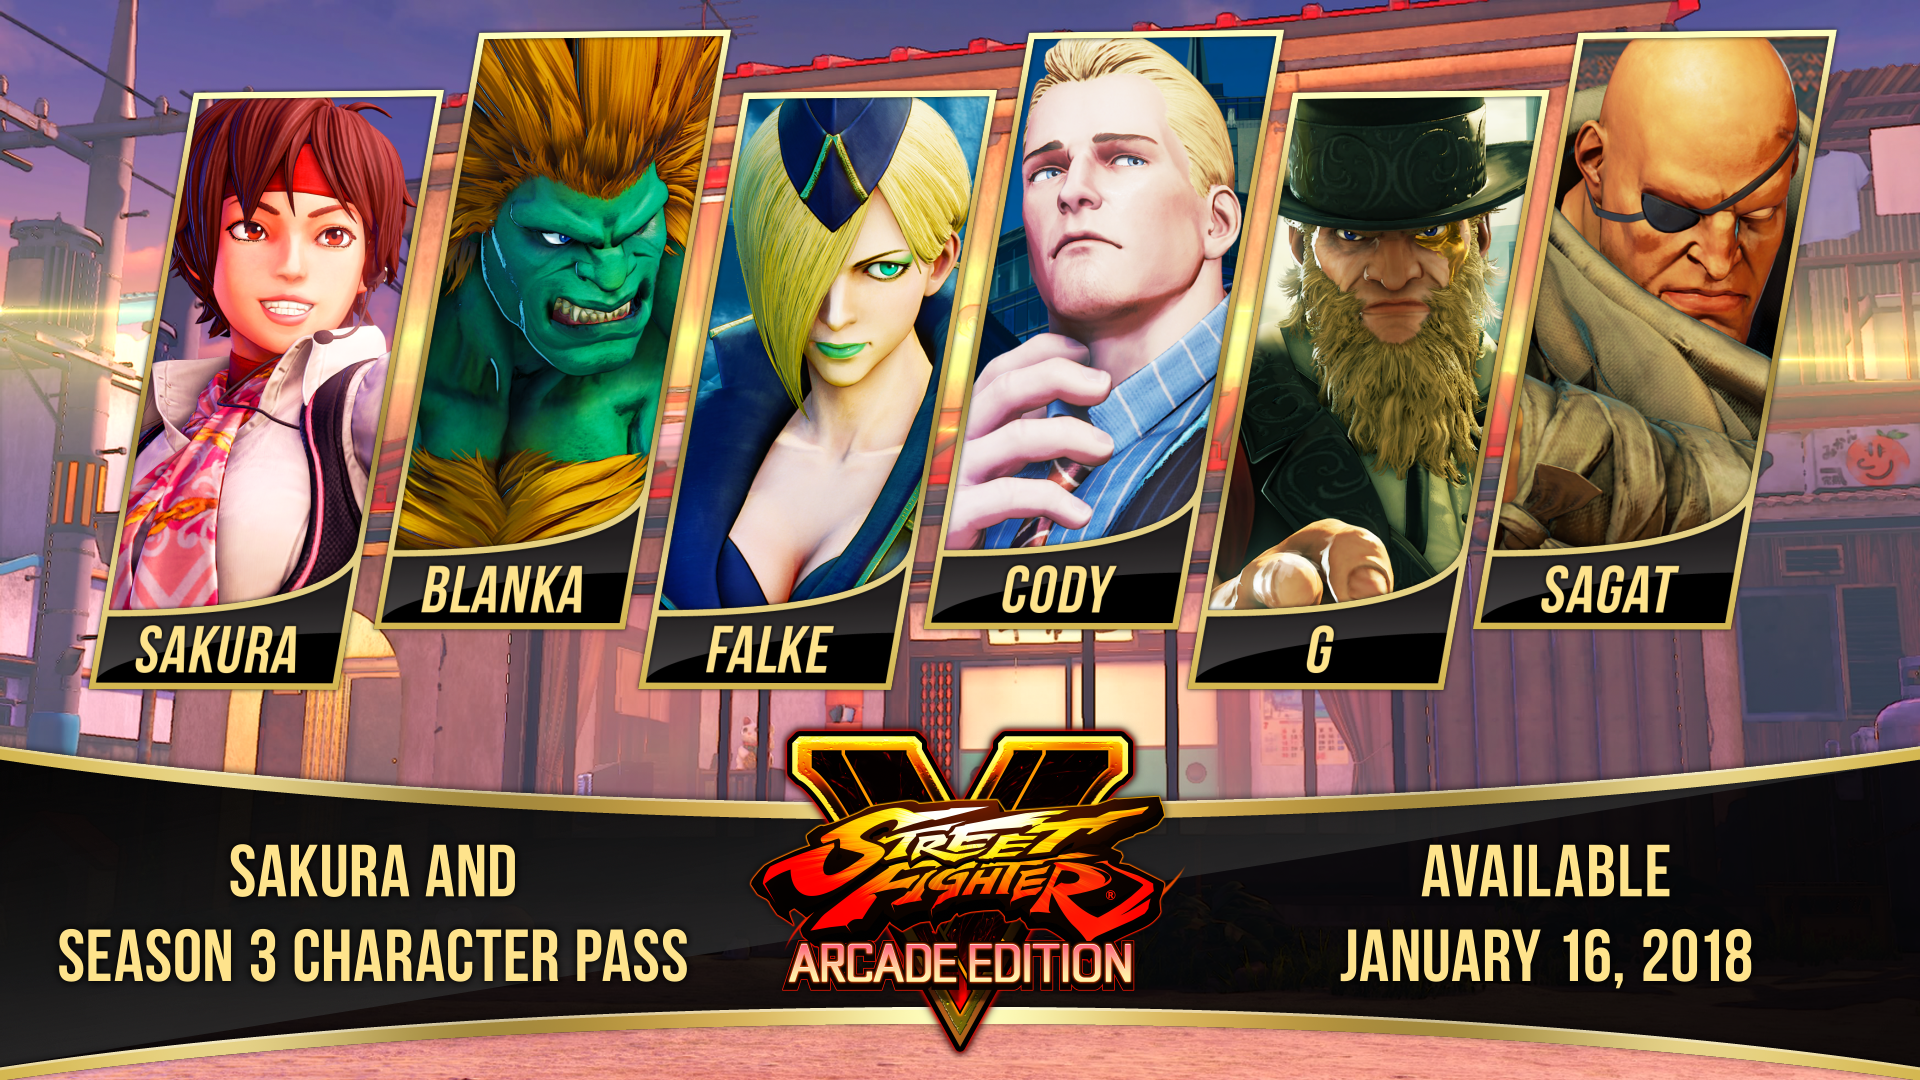 Street Fighter V Season 3 DLC To Include Sakura, Blanka And More